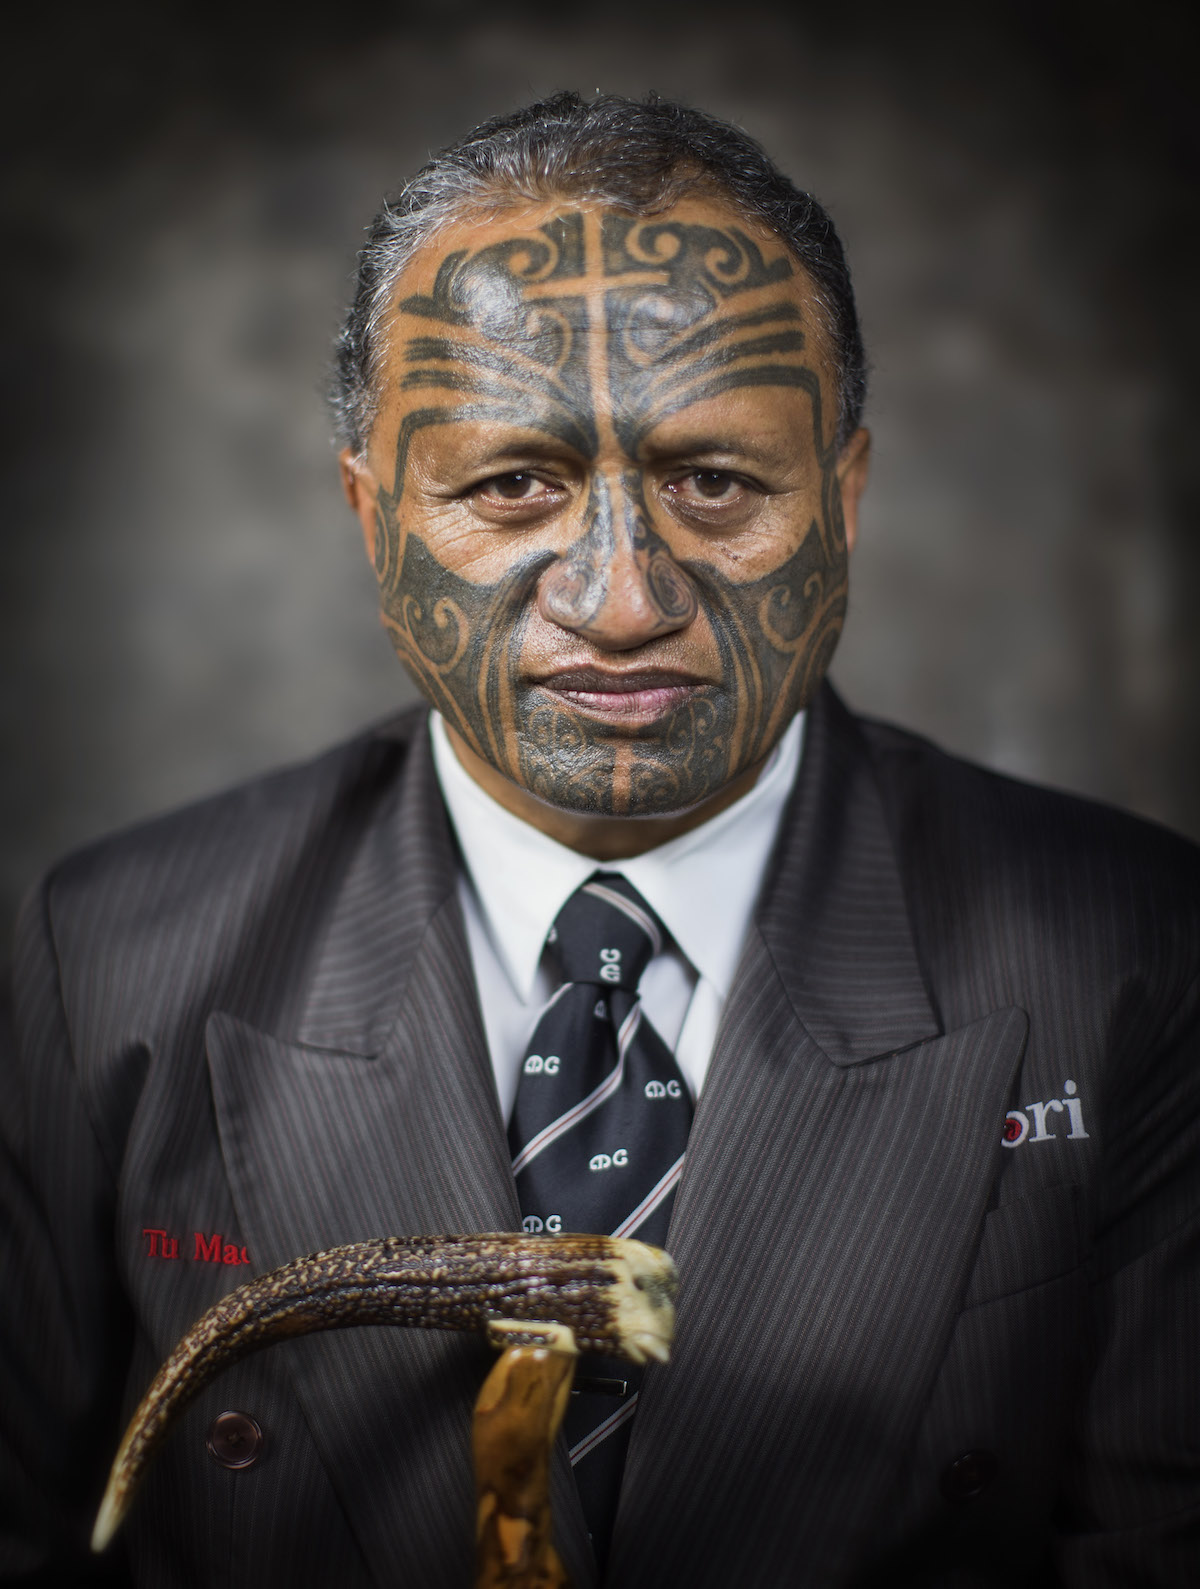 Maori Man: Artist Explores The Near Extinction Of Māori Face And Body